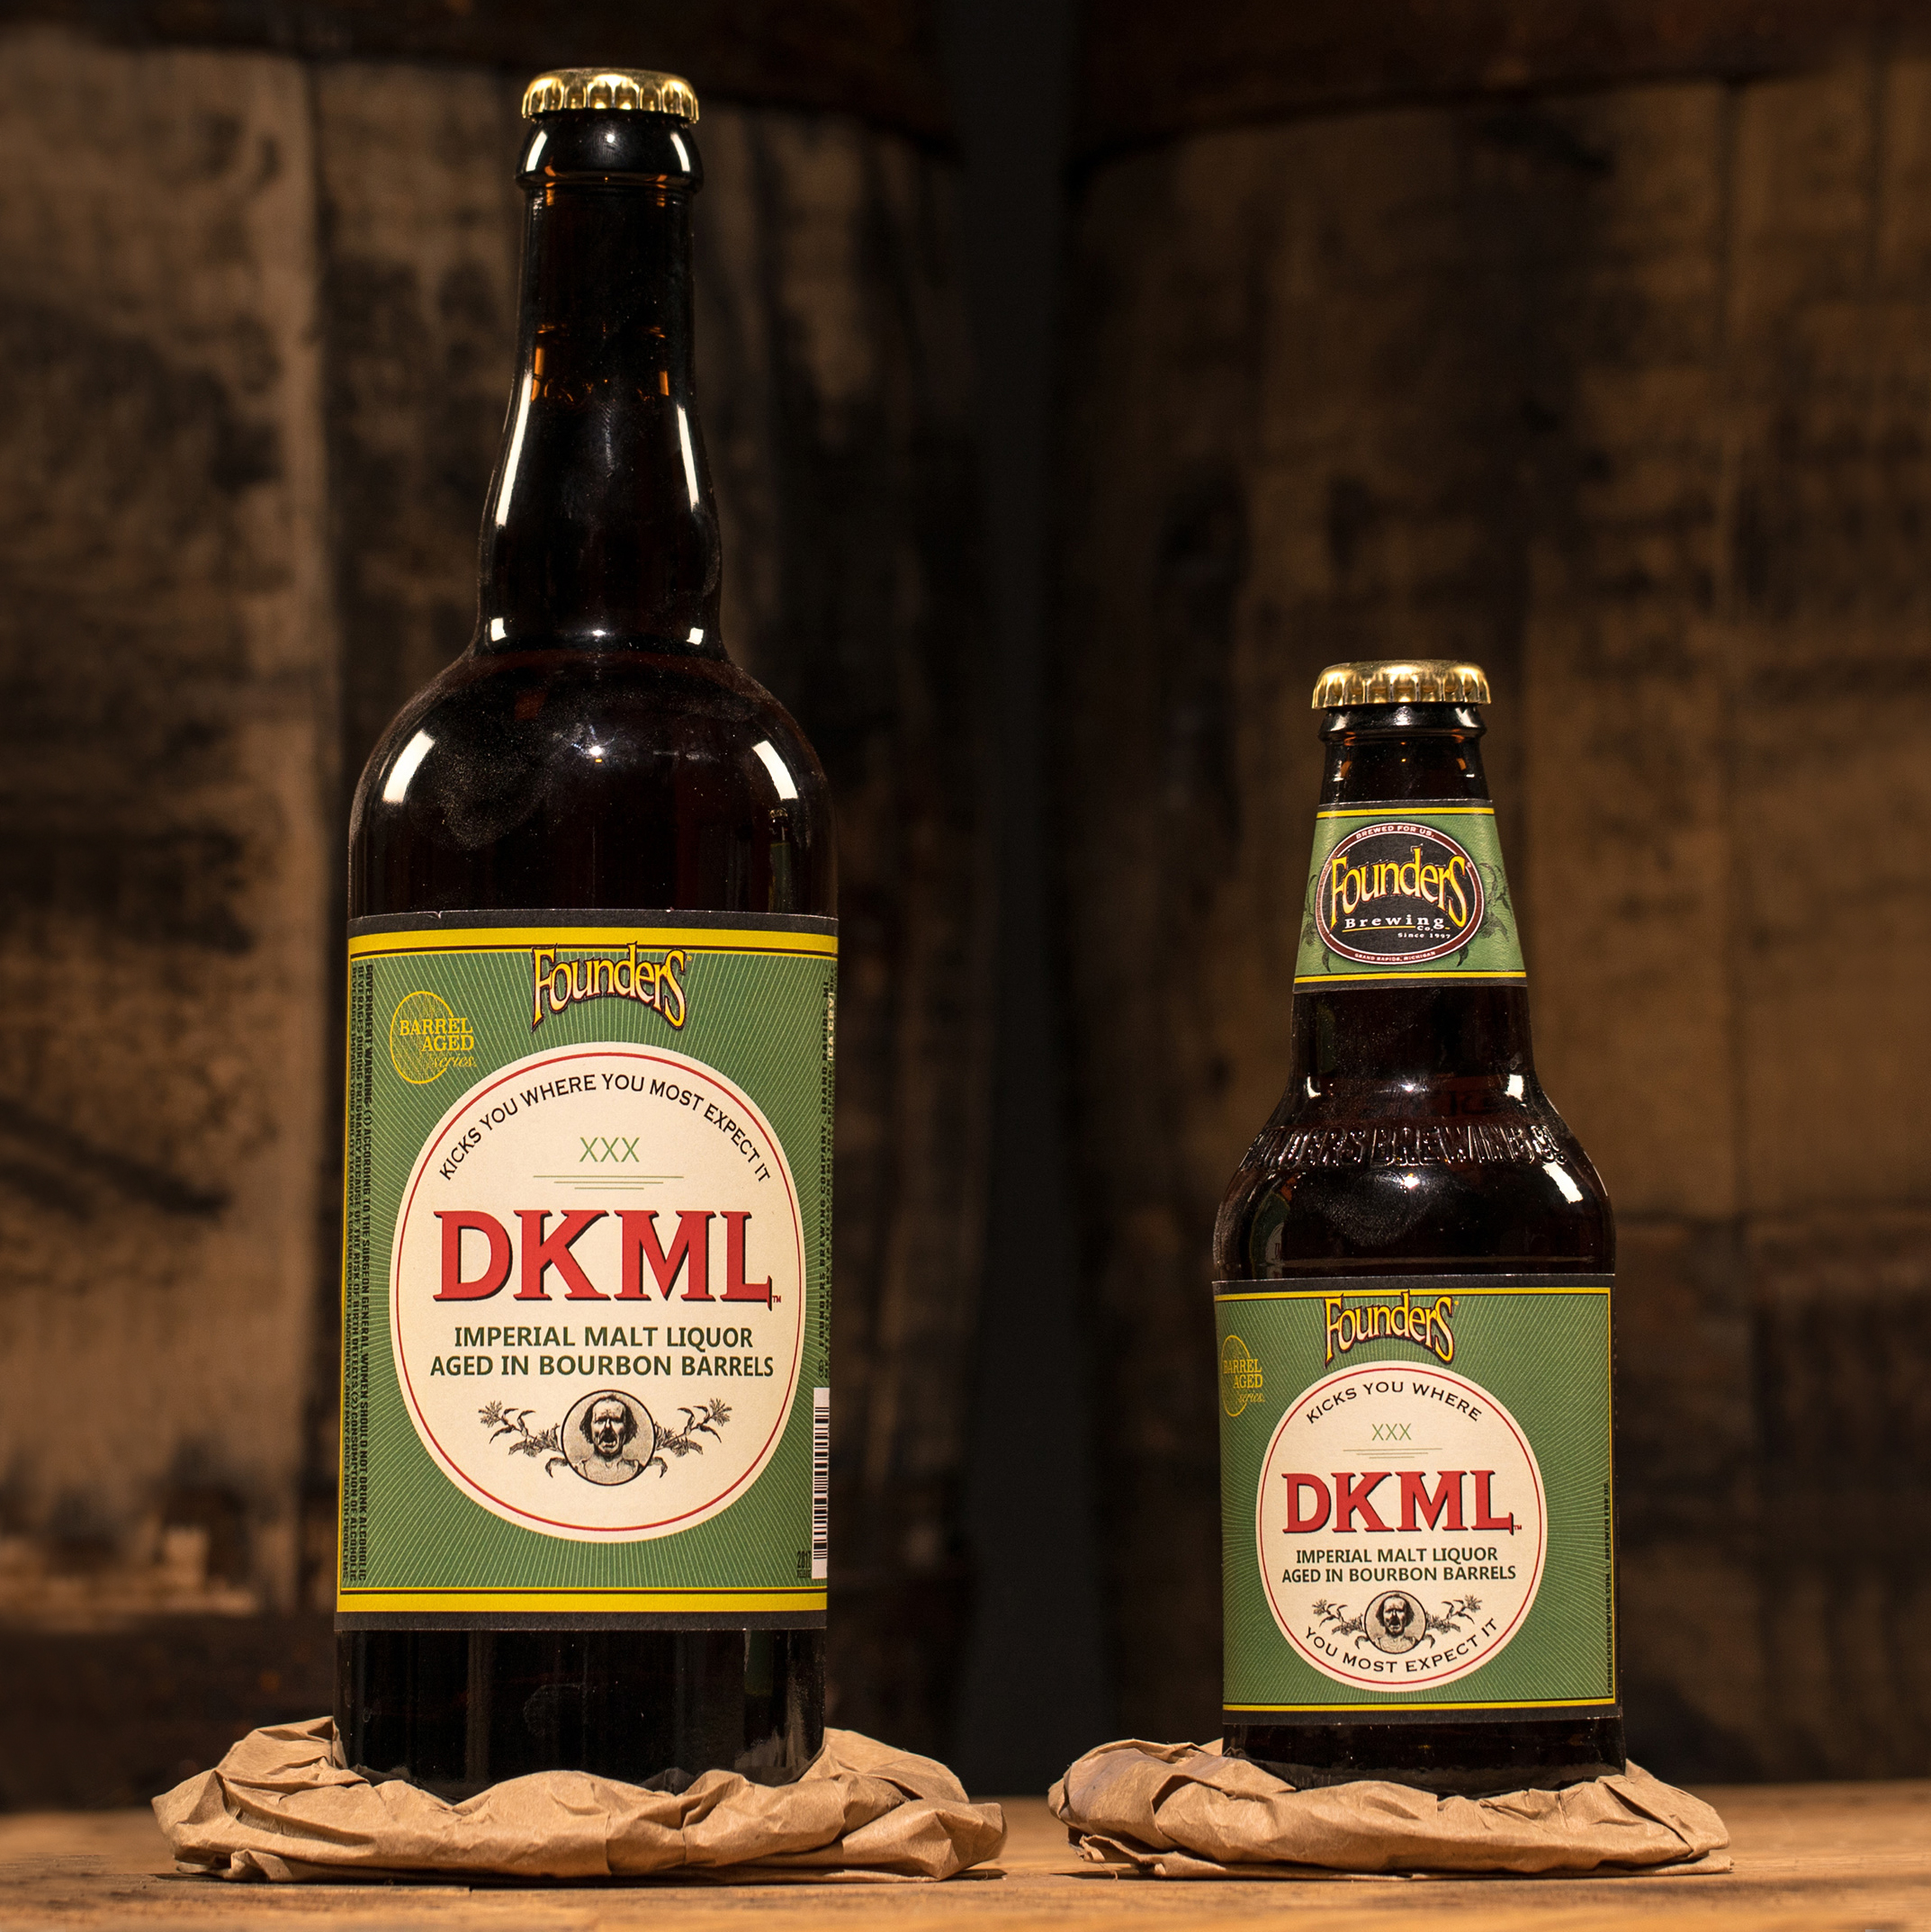 Two different sized bottles of Founder's DKML